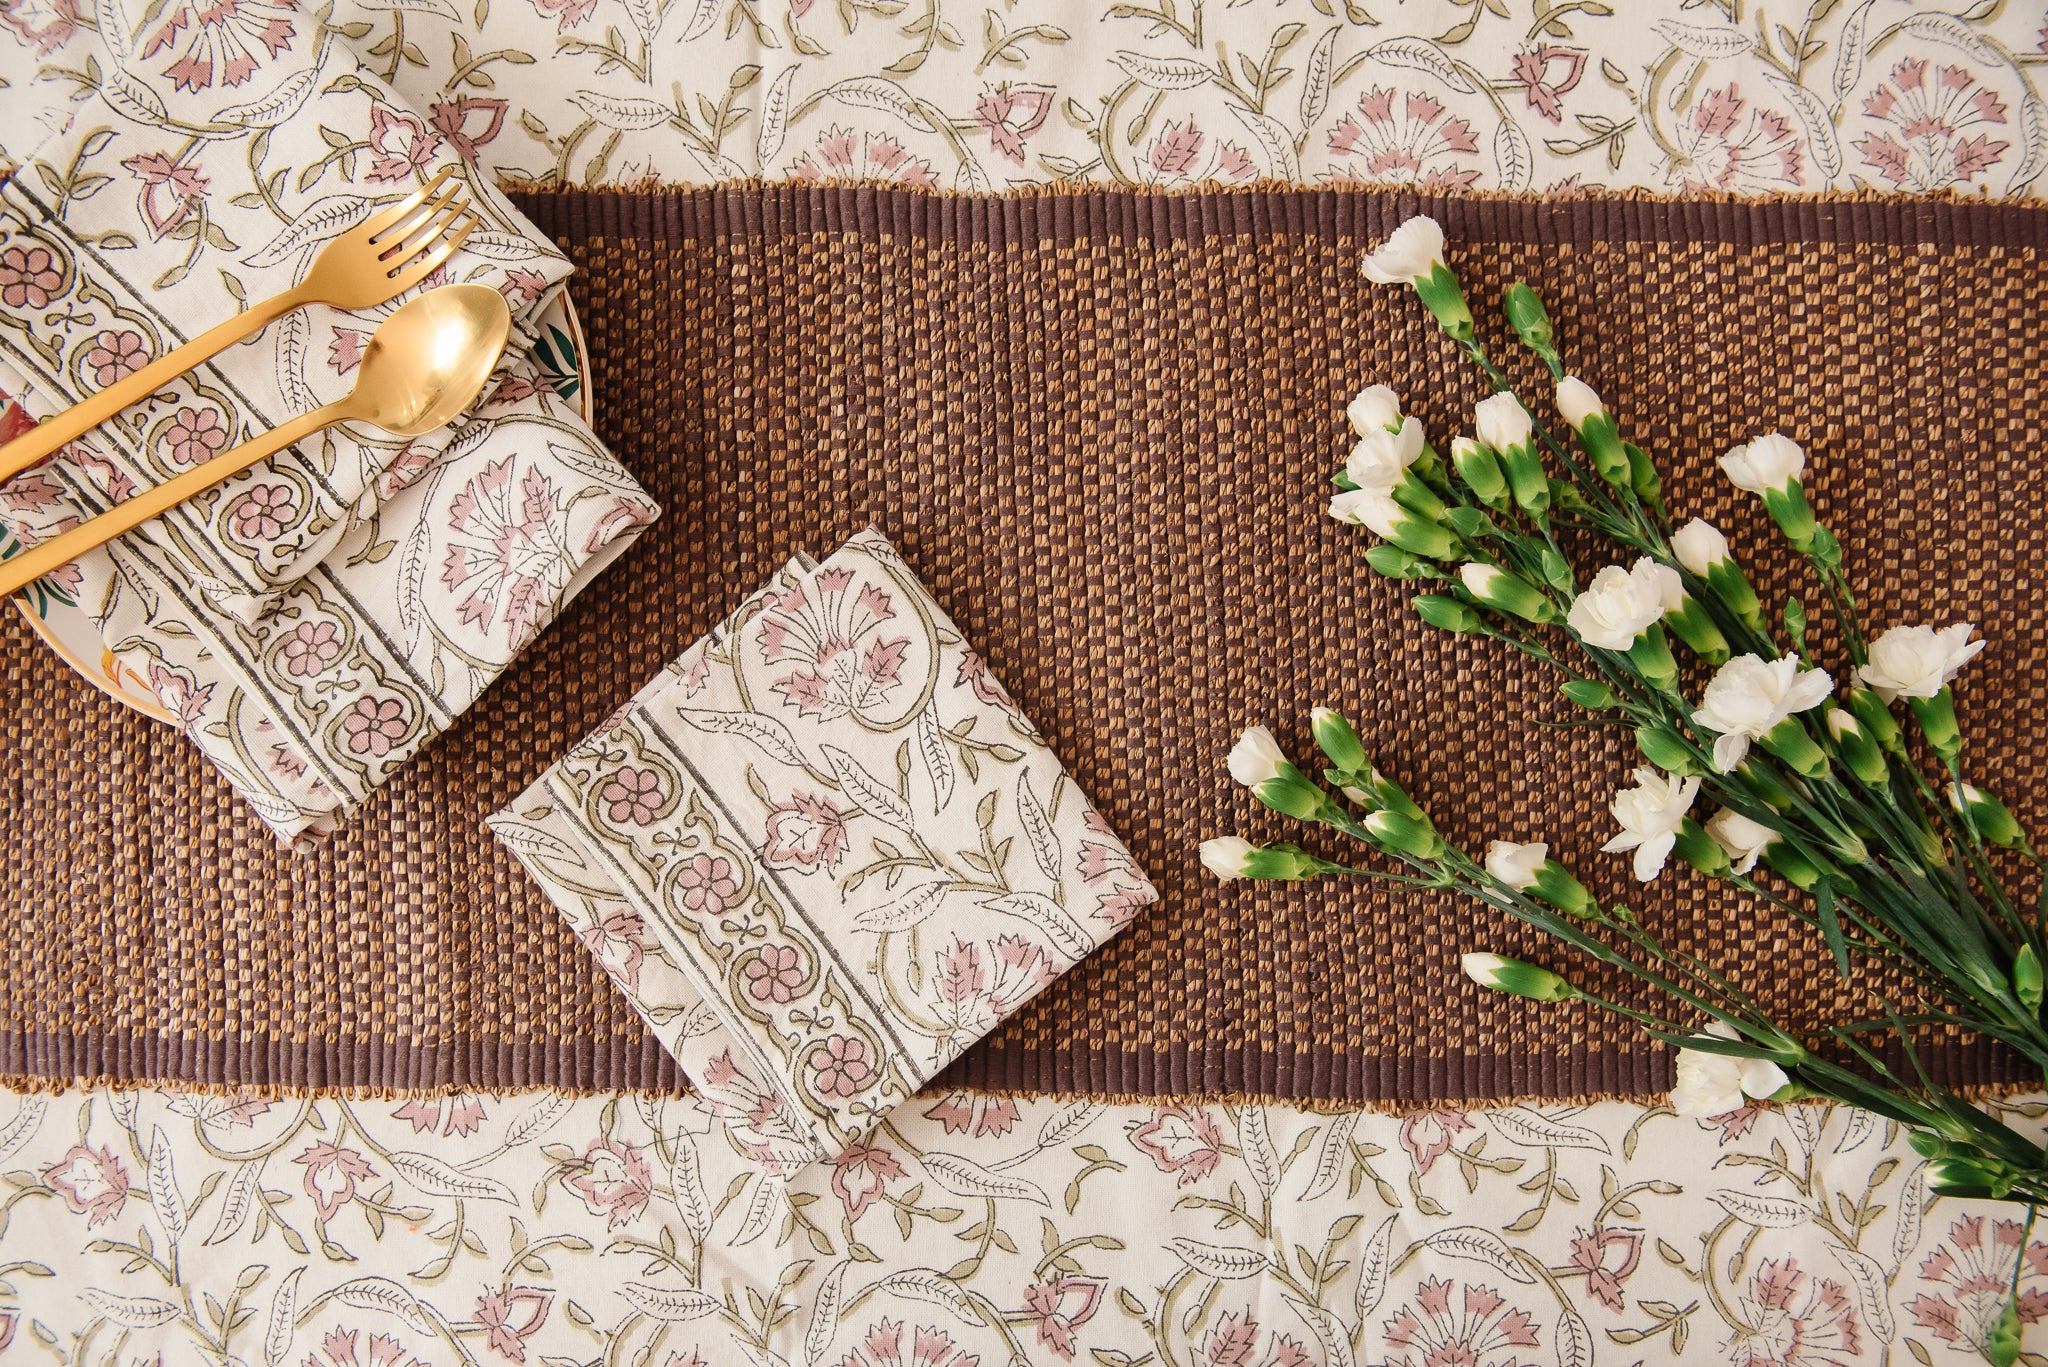 floral printed table linens